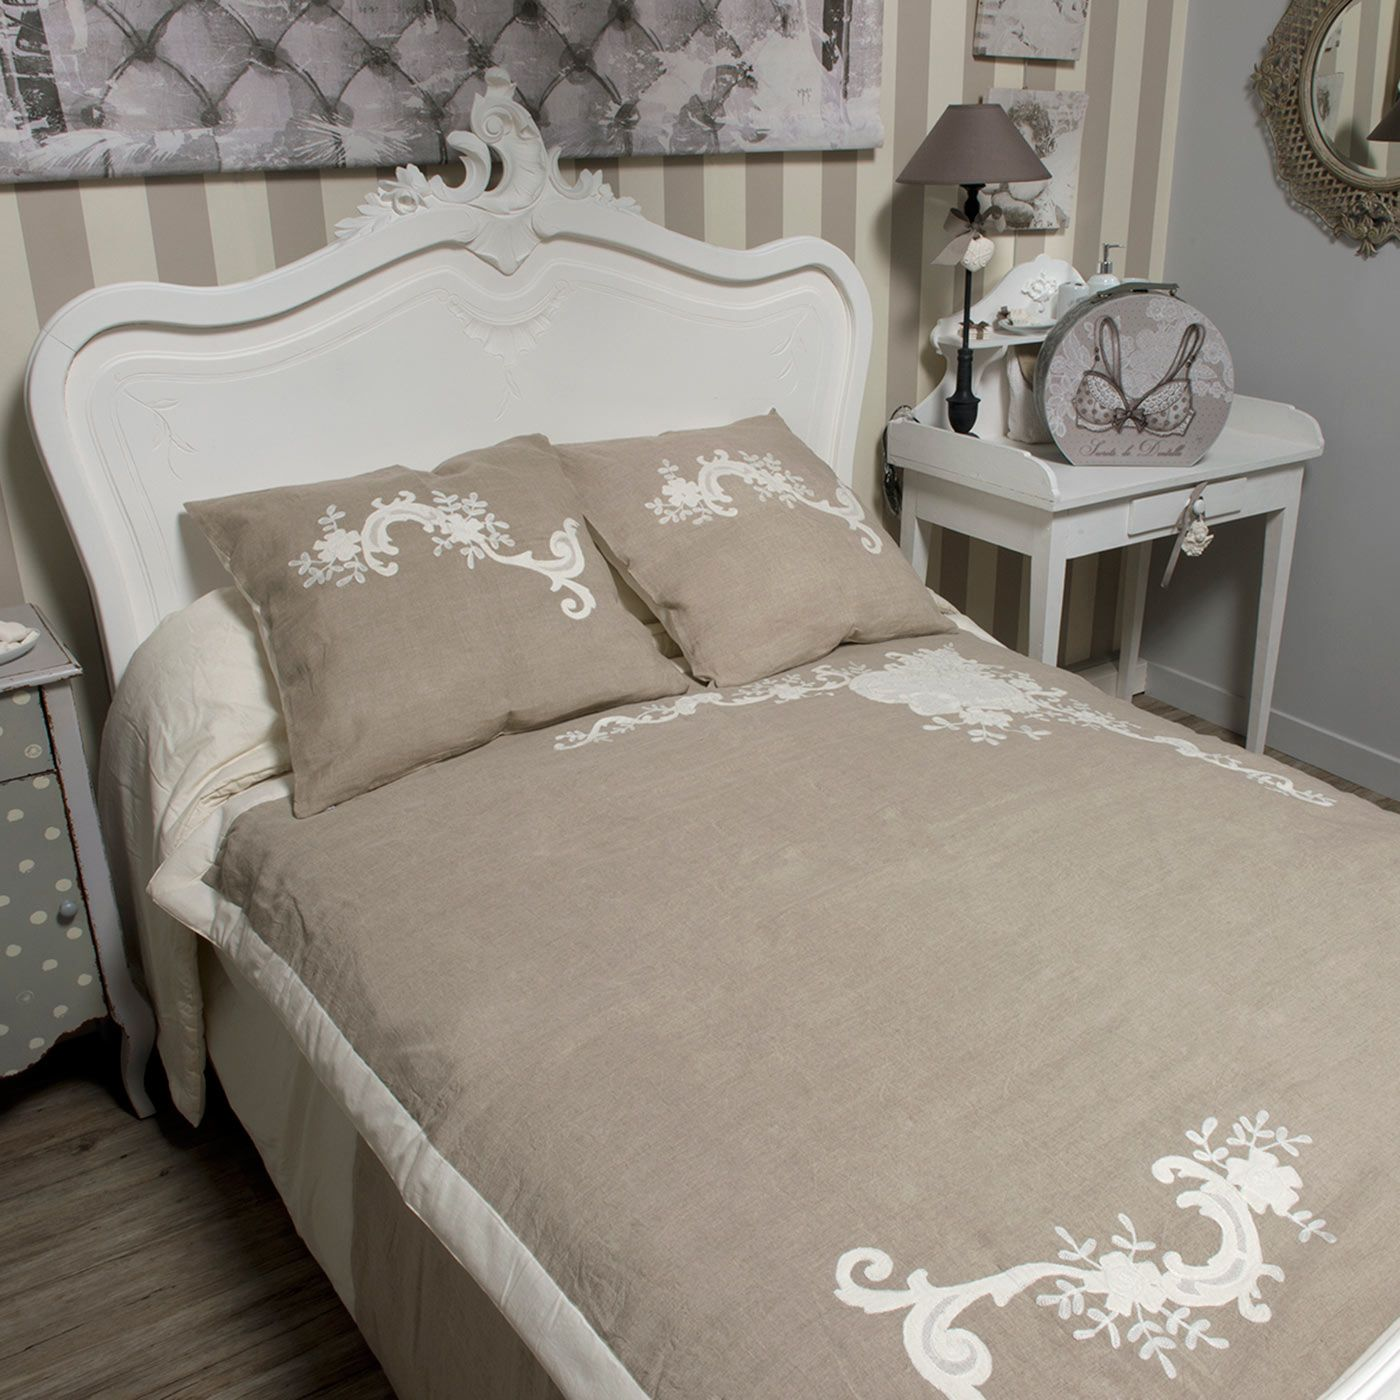 jet de lit marquise mathilde m esprit shabby chic. Black Bedroom Furniture Sets. Home Design Ideas